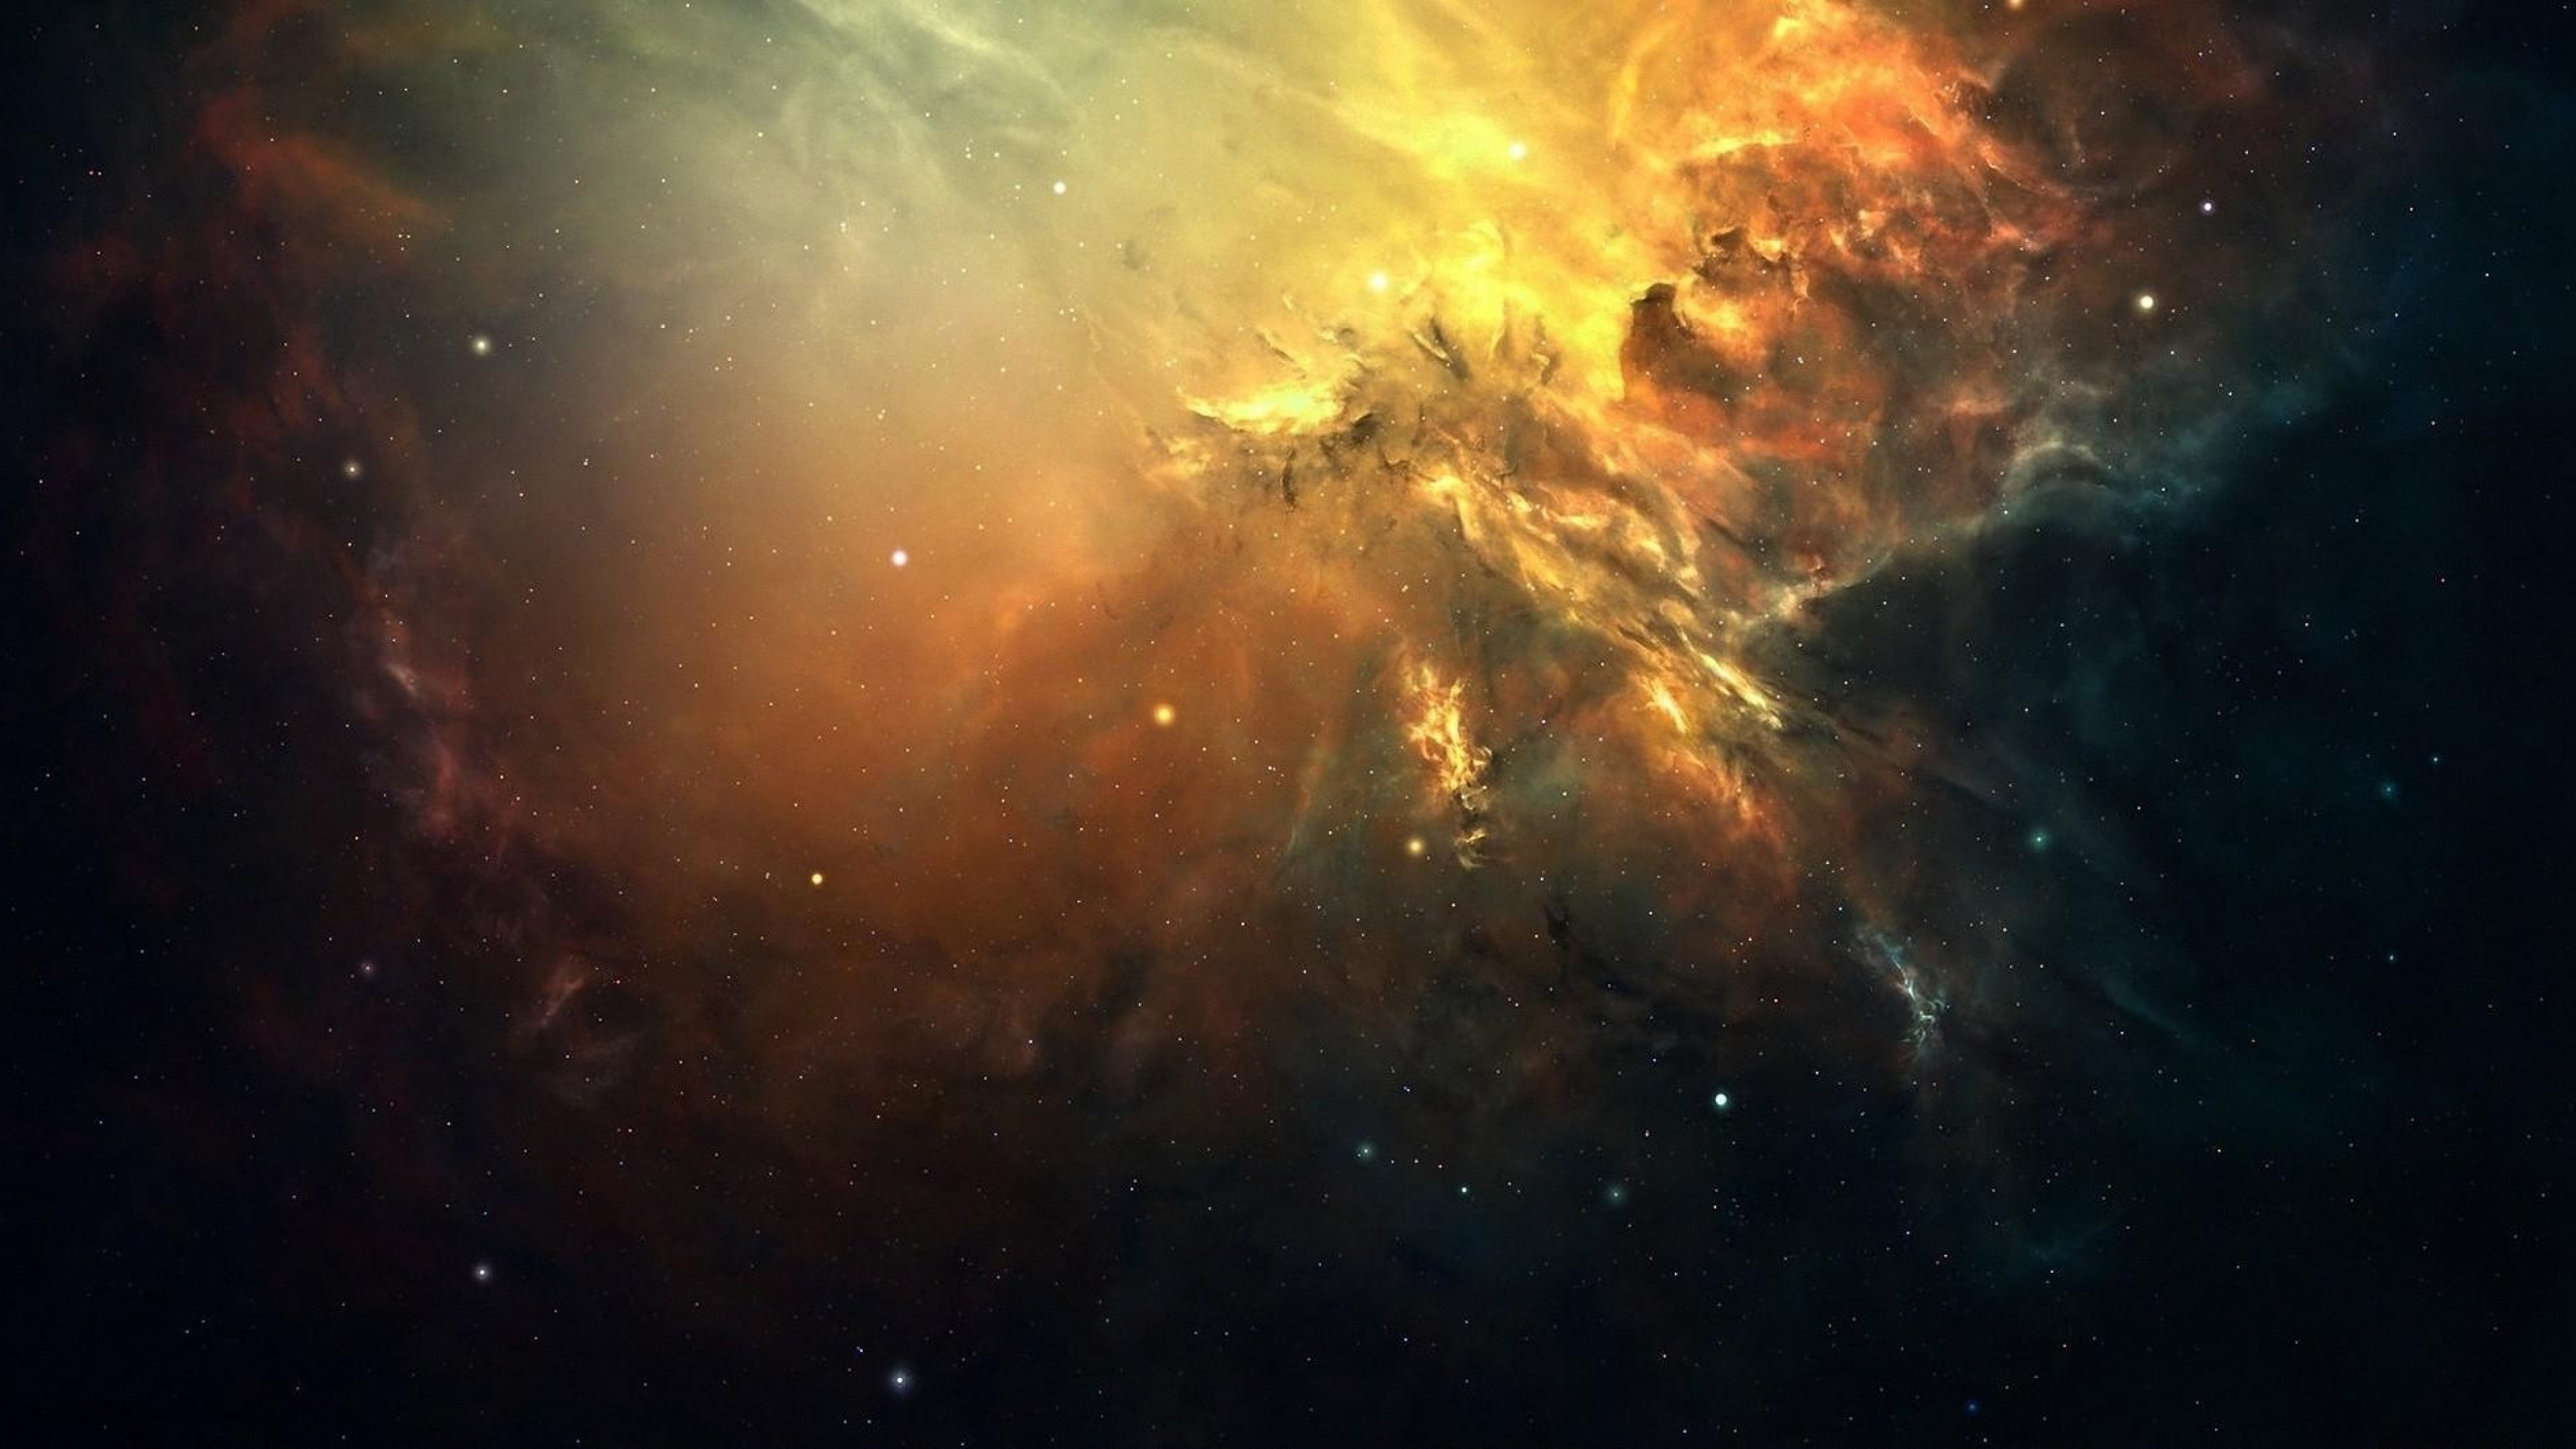 Space wallpaper 4K ·① Download free awesome High ...